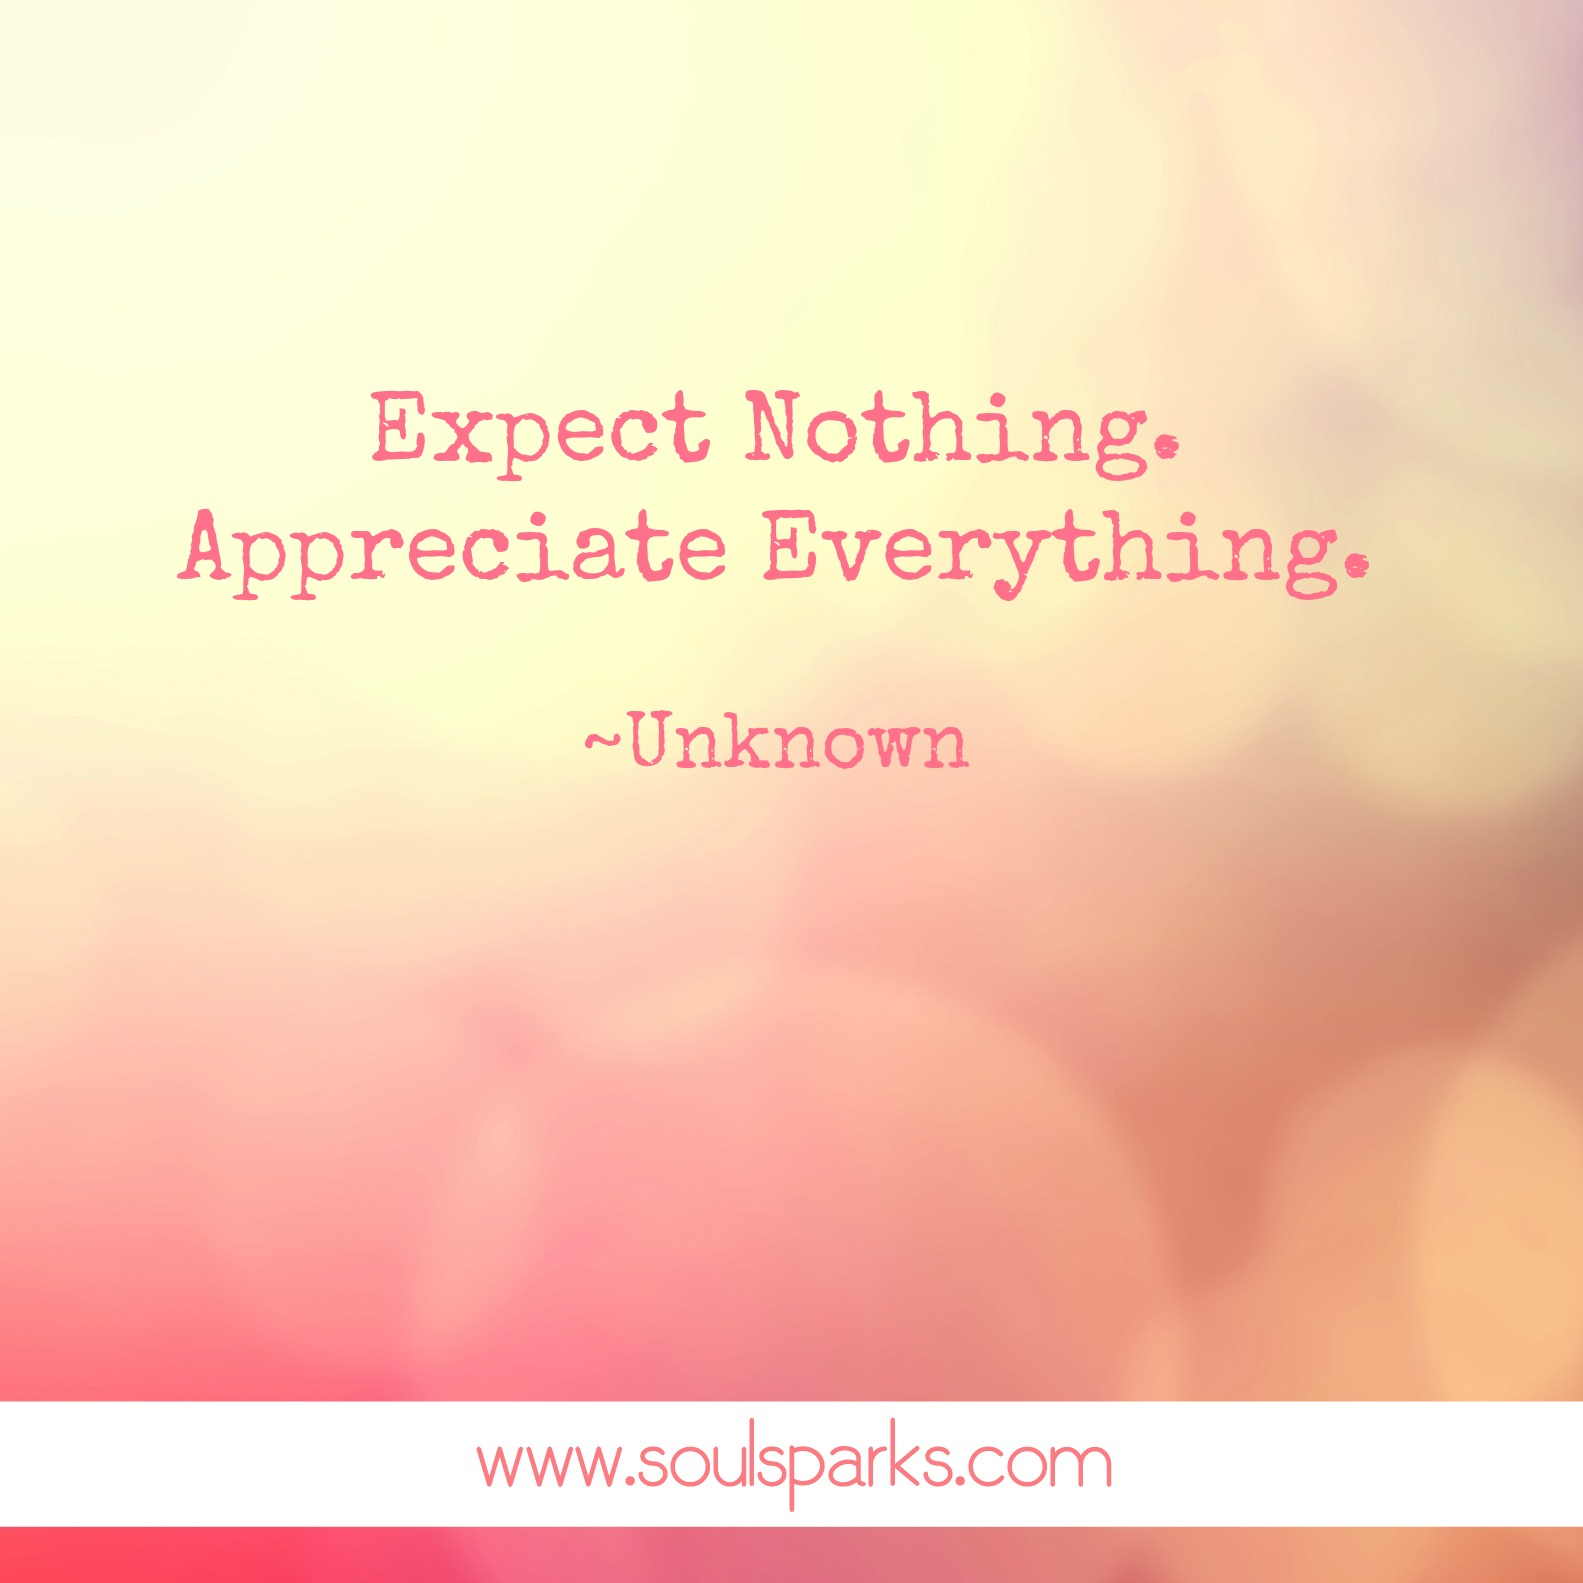 Expect Nothing. Appreciate Everything. ~Unknown